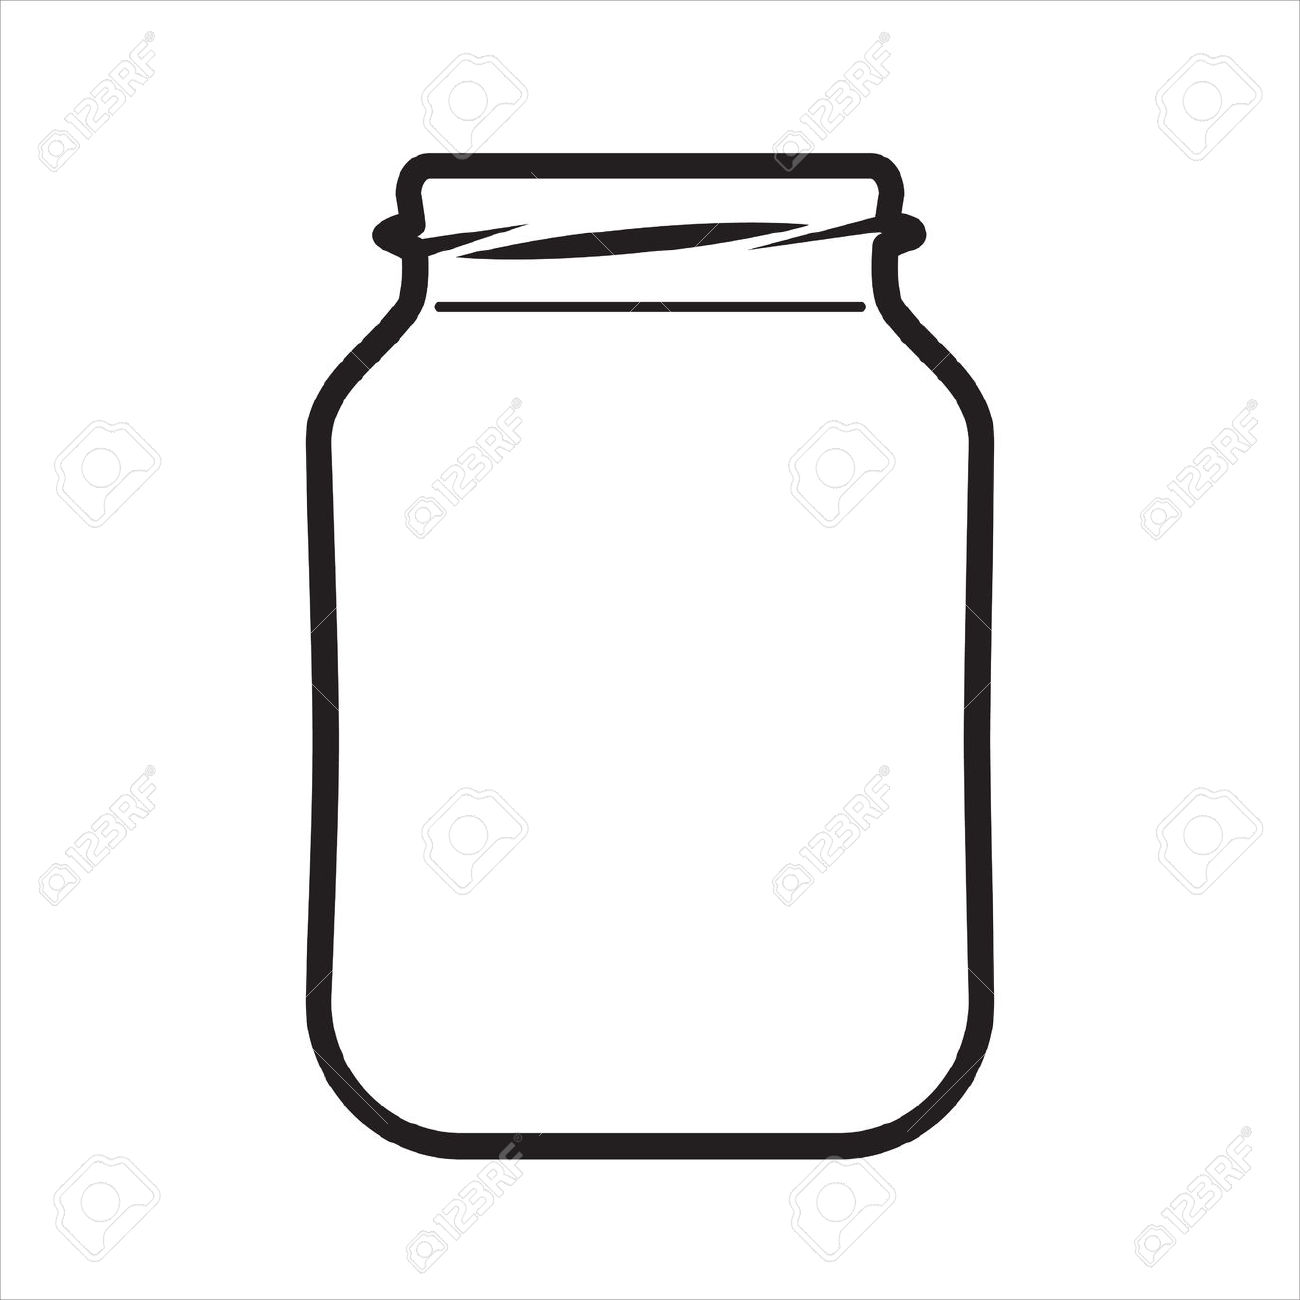 2,098 Storage Jars Stock Vector Illustration And Royalty Free.